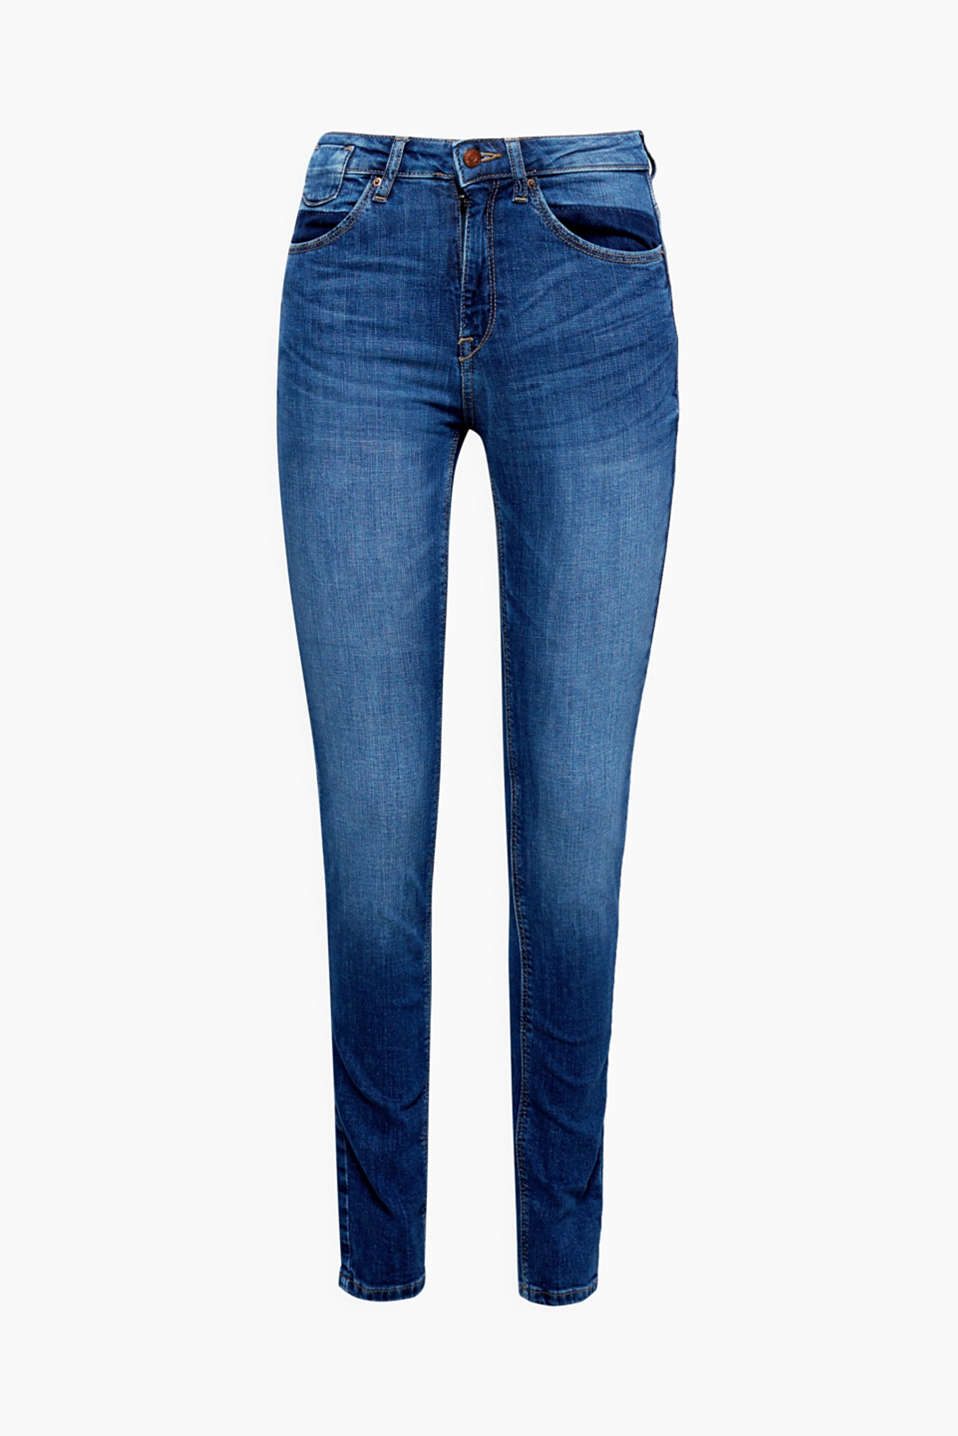 These slim fit stretch denim jeans in an innovative fabric blend feature pockets in a surprising new design!